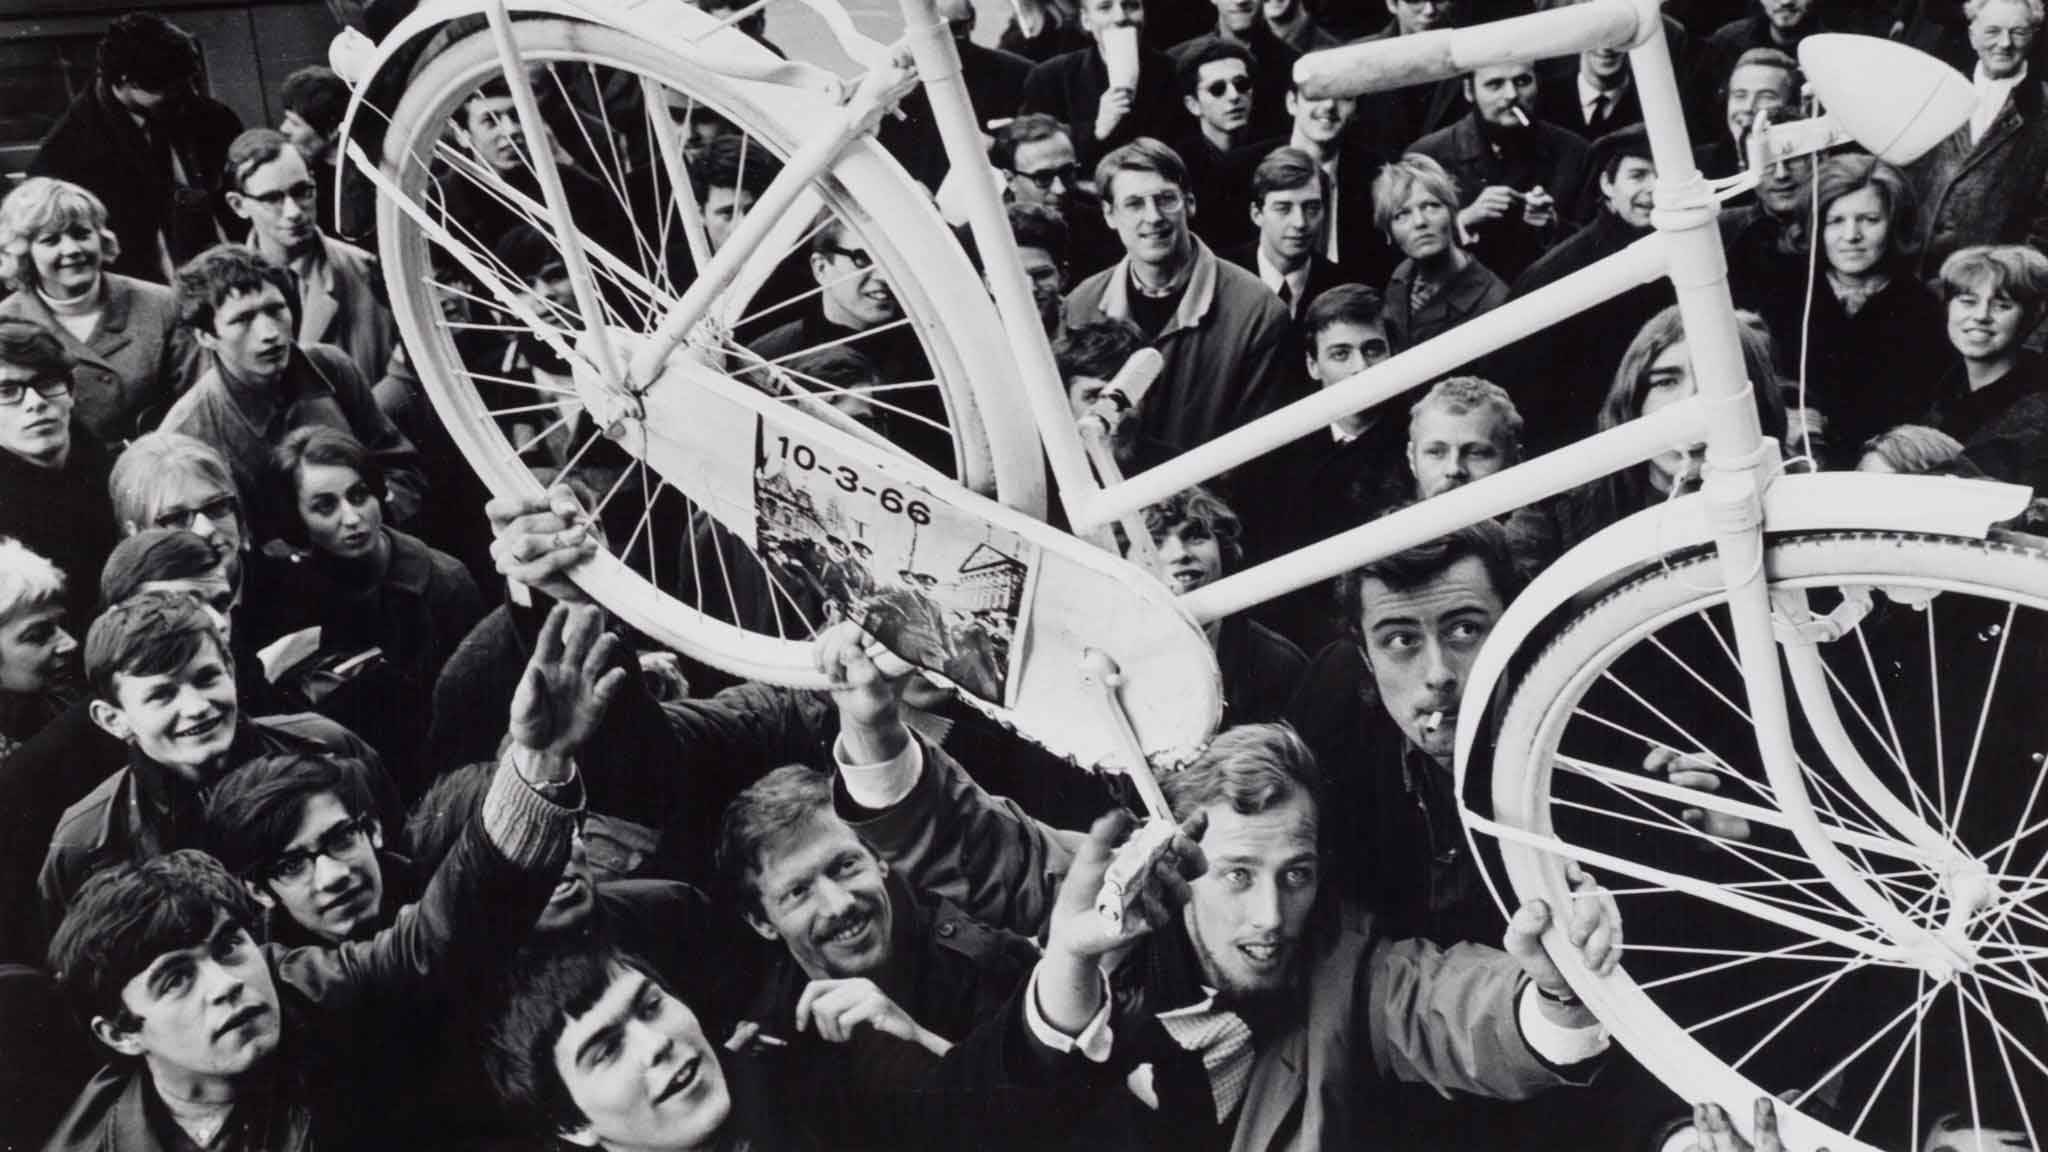 crowd hold up a bike